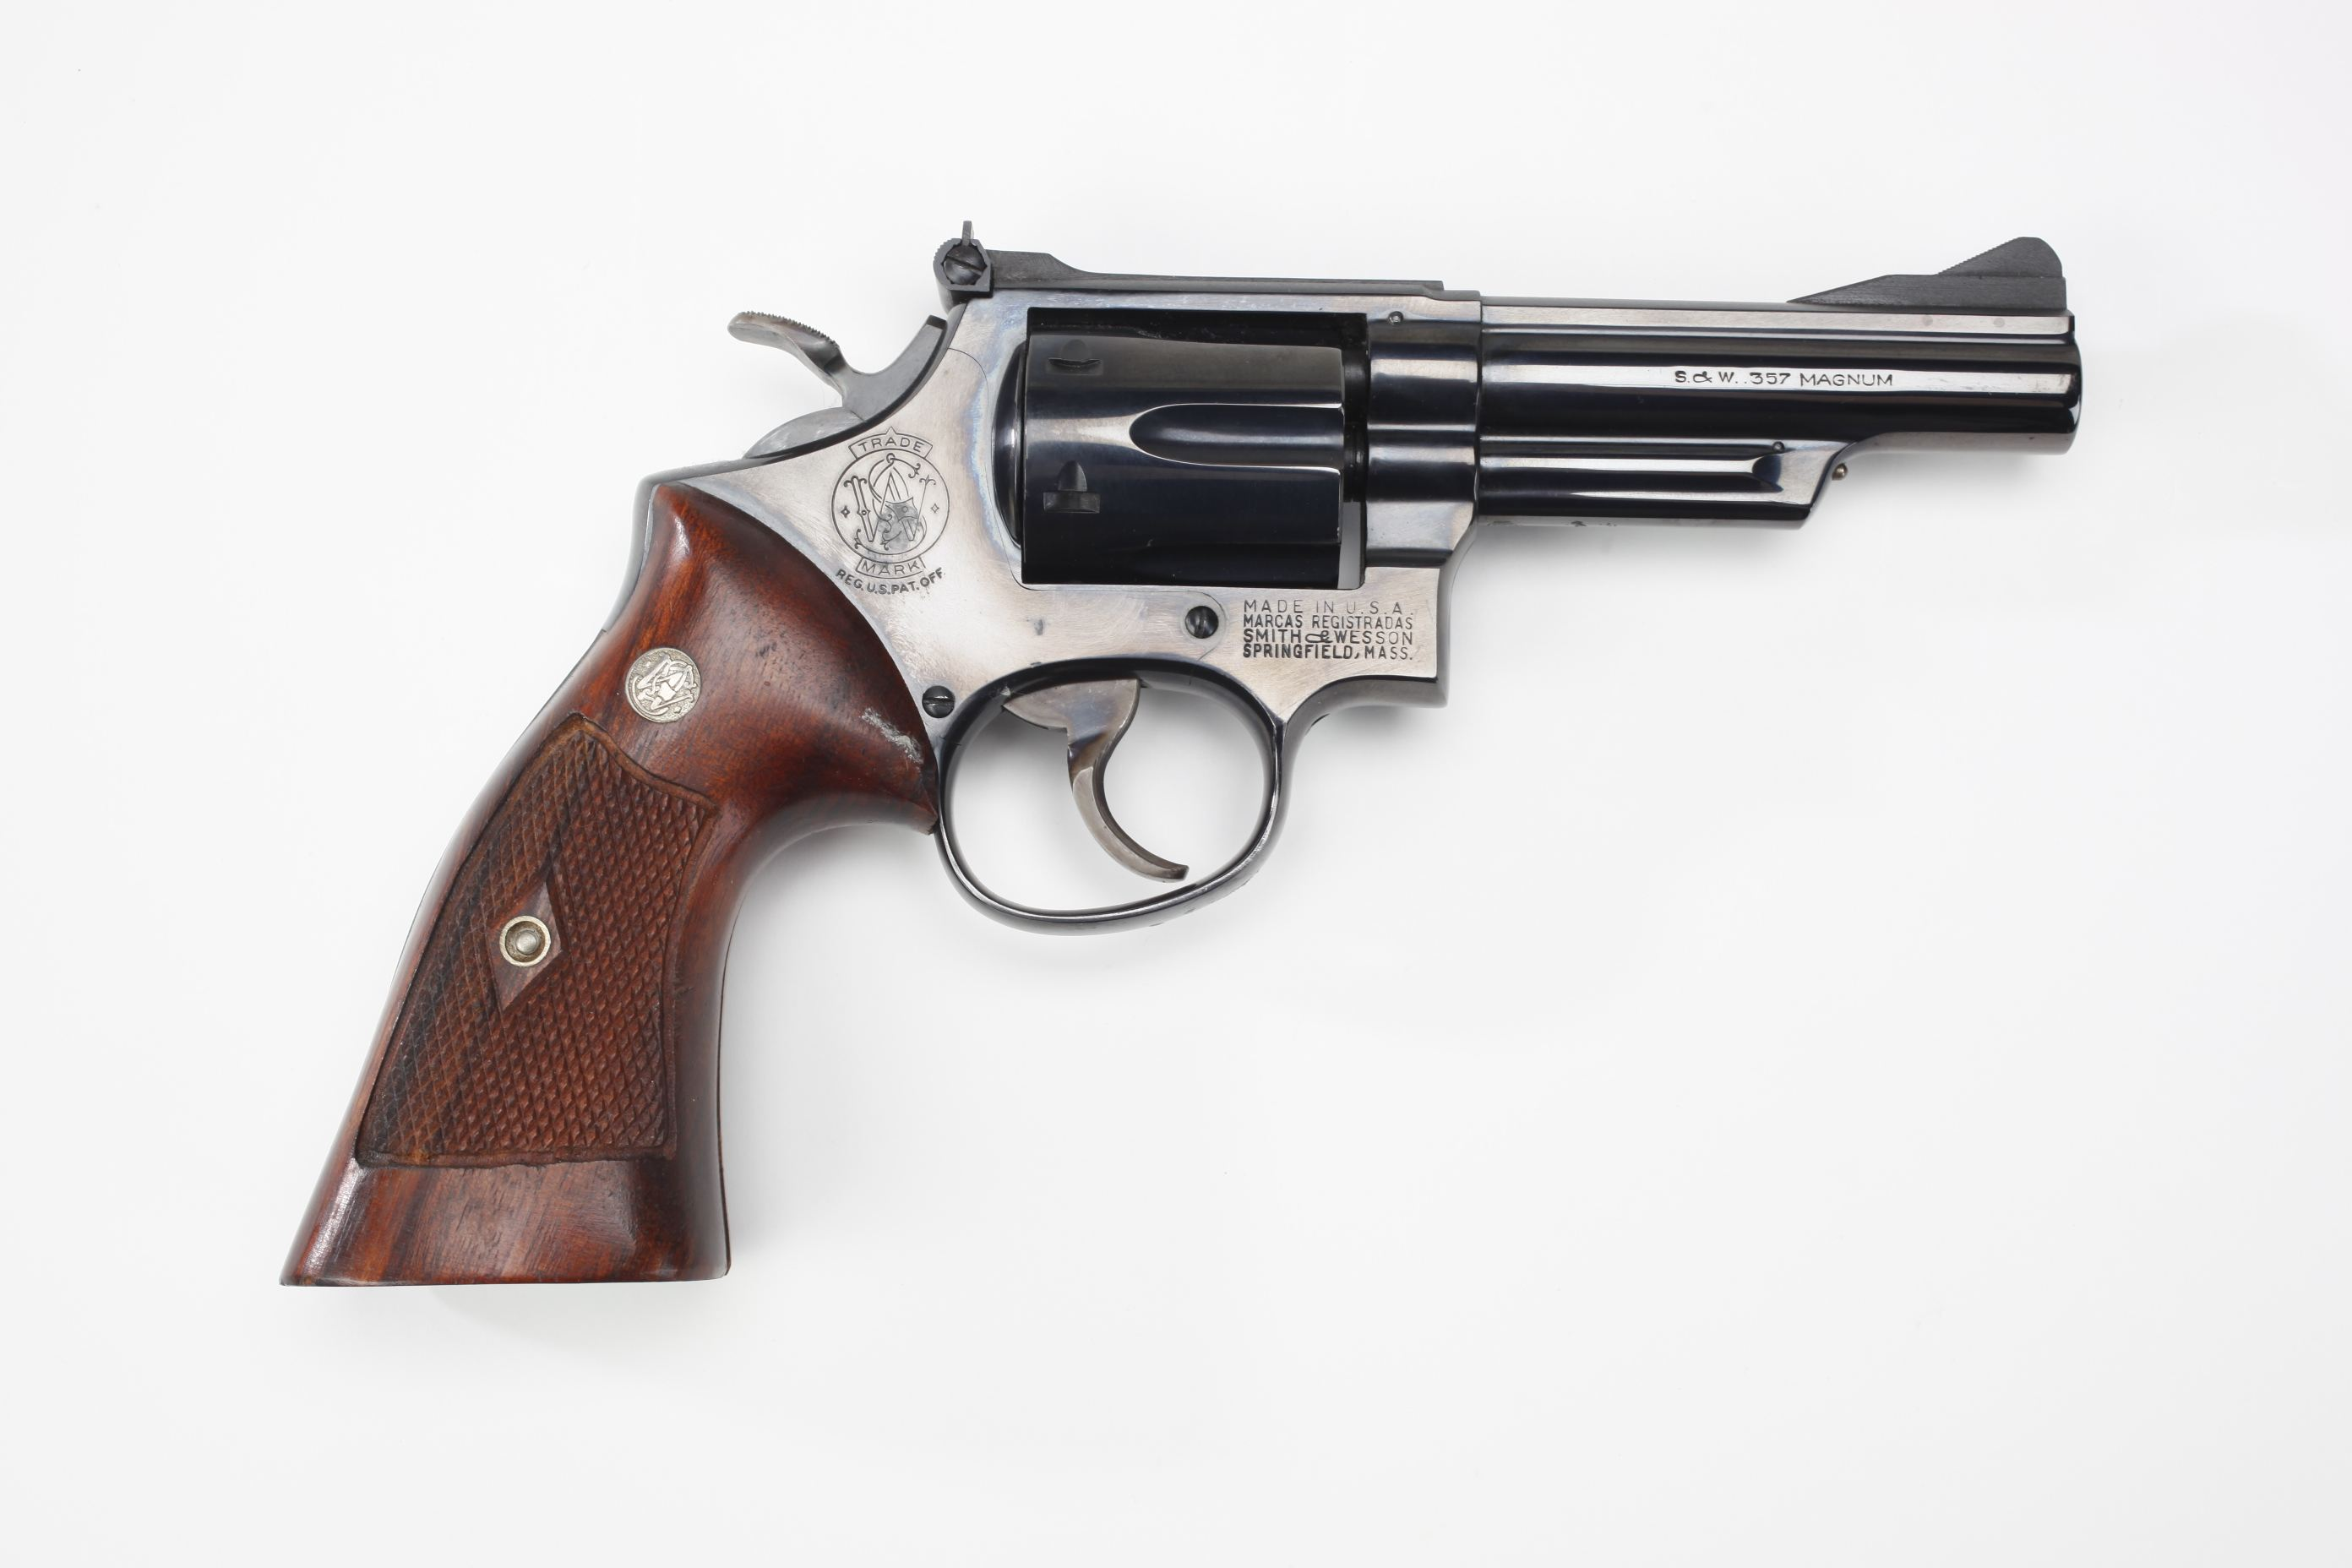 Smith & Wesson Model 19 Combat Magnum Revolver